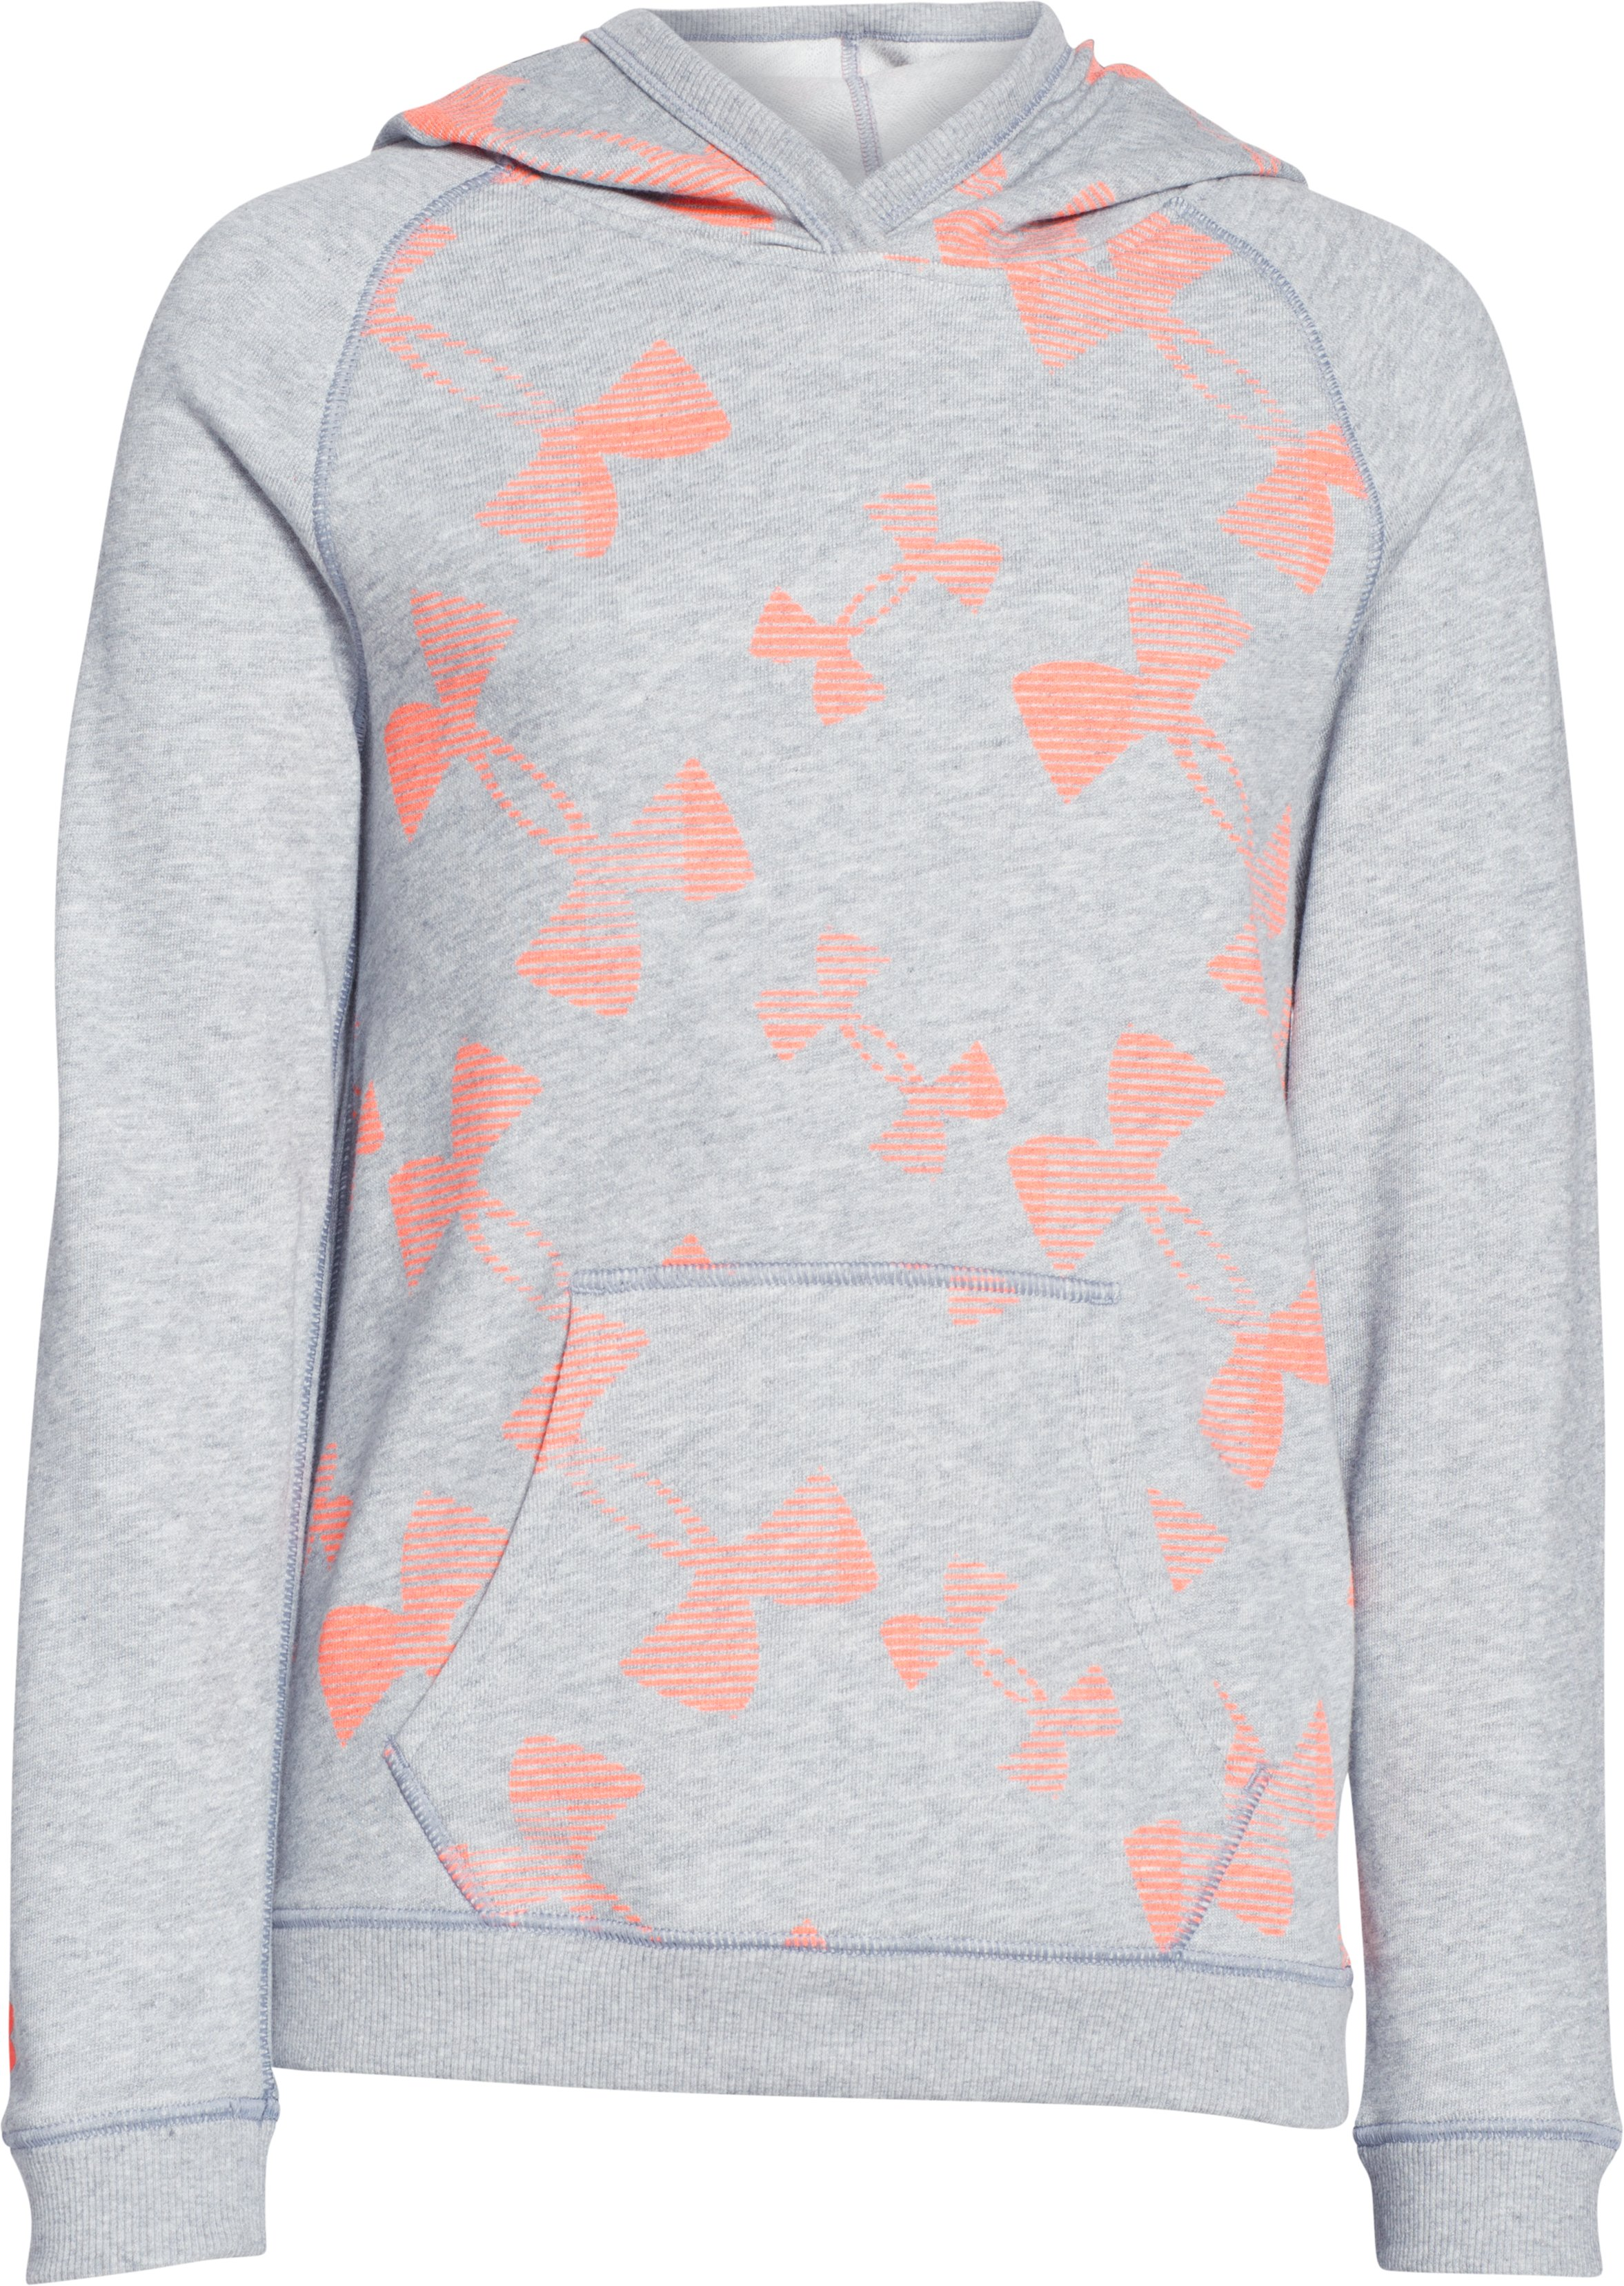 Girls' UA Kaleidalogo Hoodie, True Gray Heather